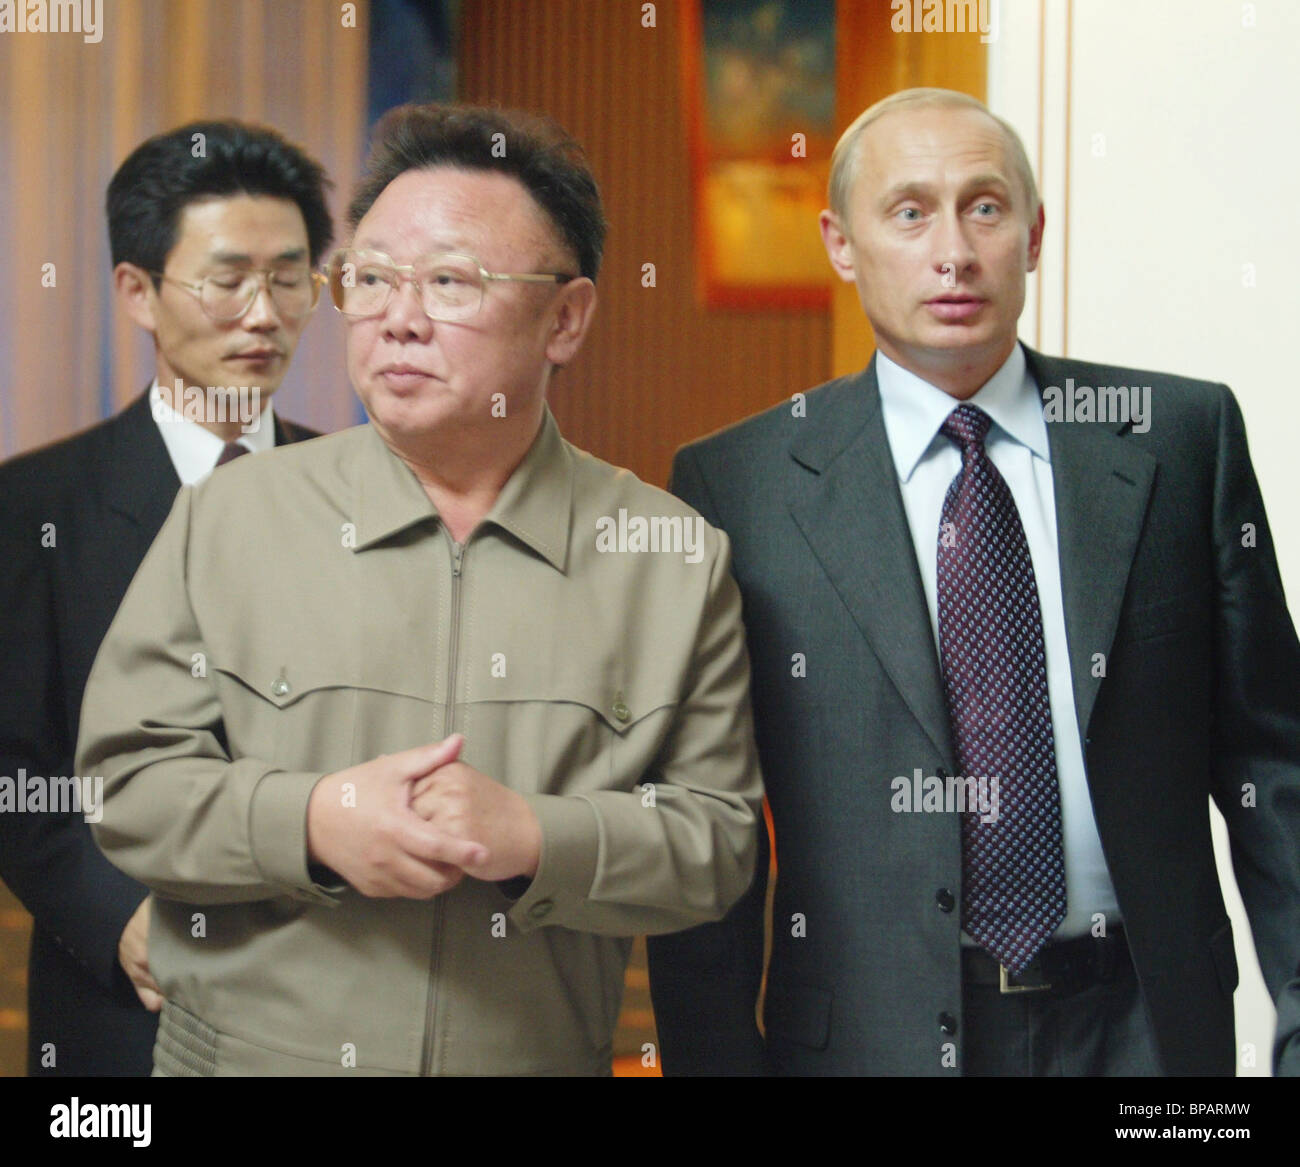 Putin Kim Jong Il Meet In Vladivostok Stock Photo Alamy